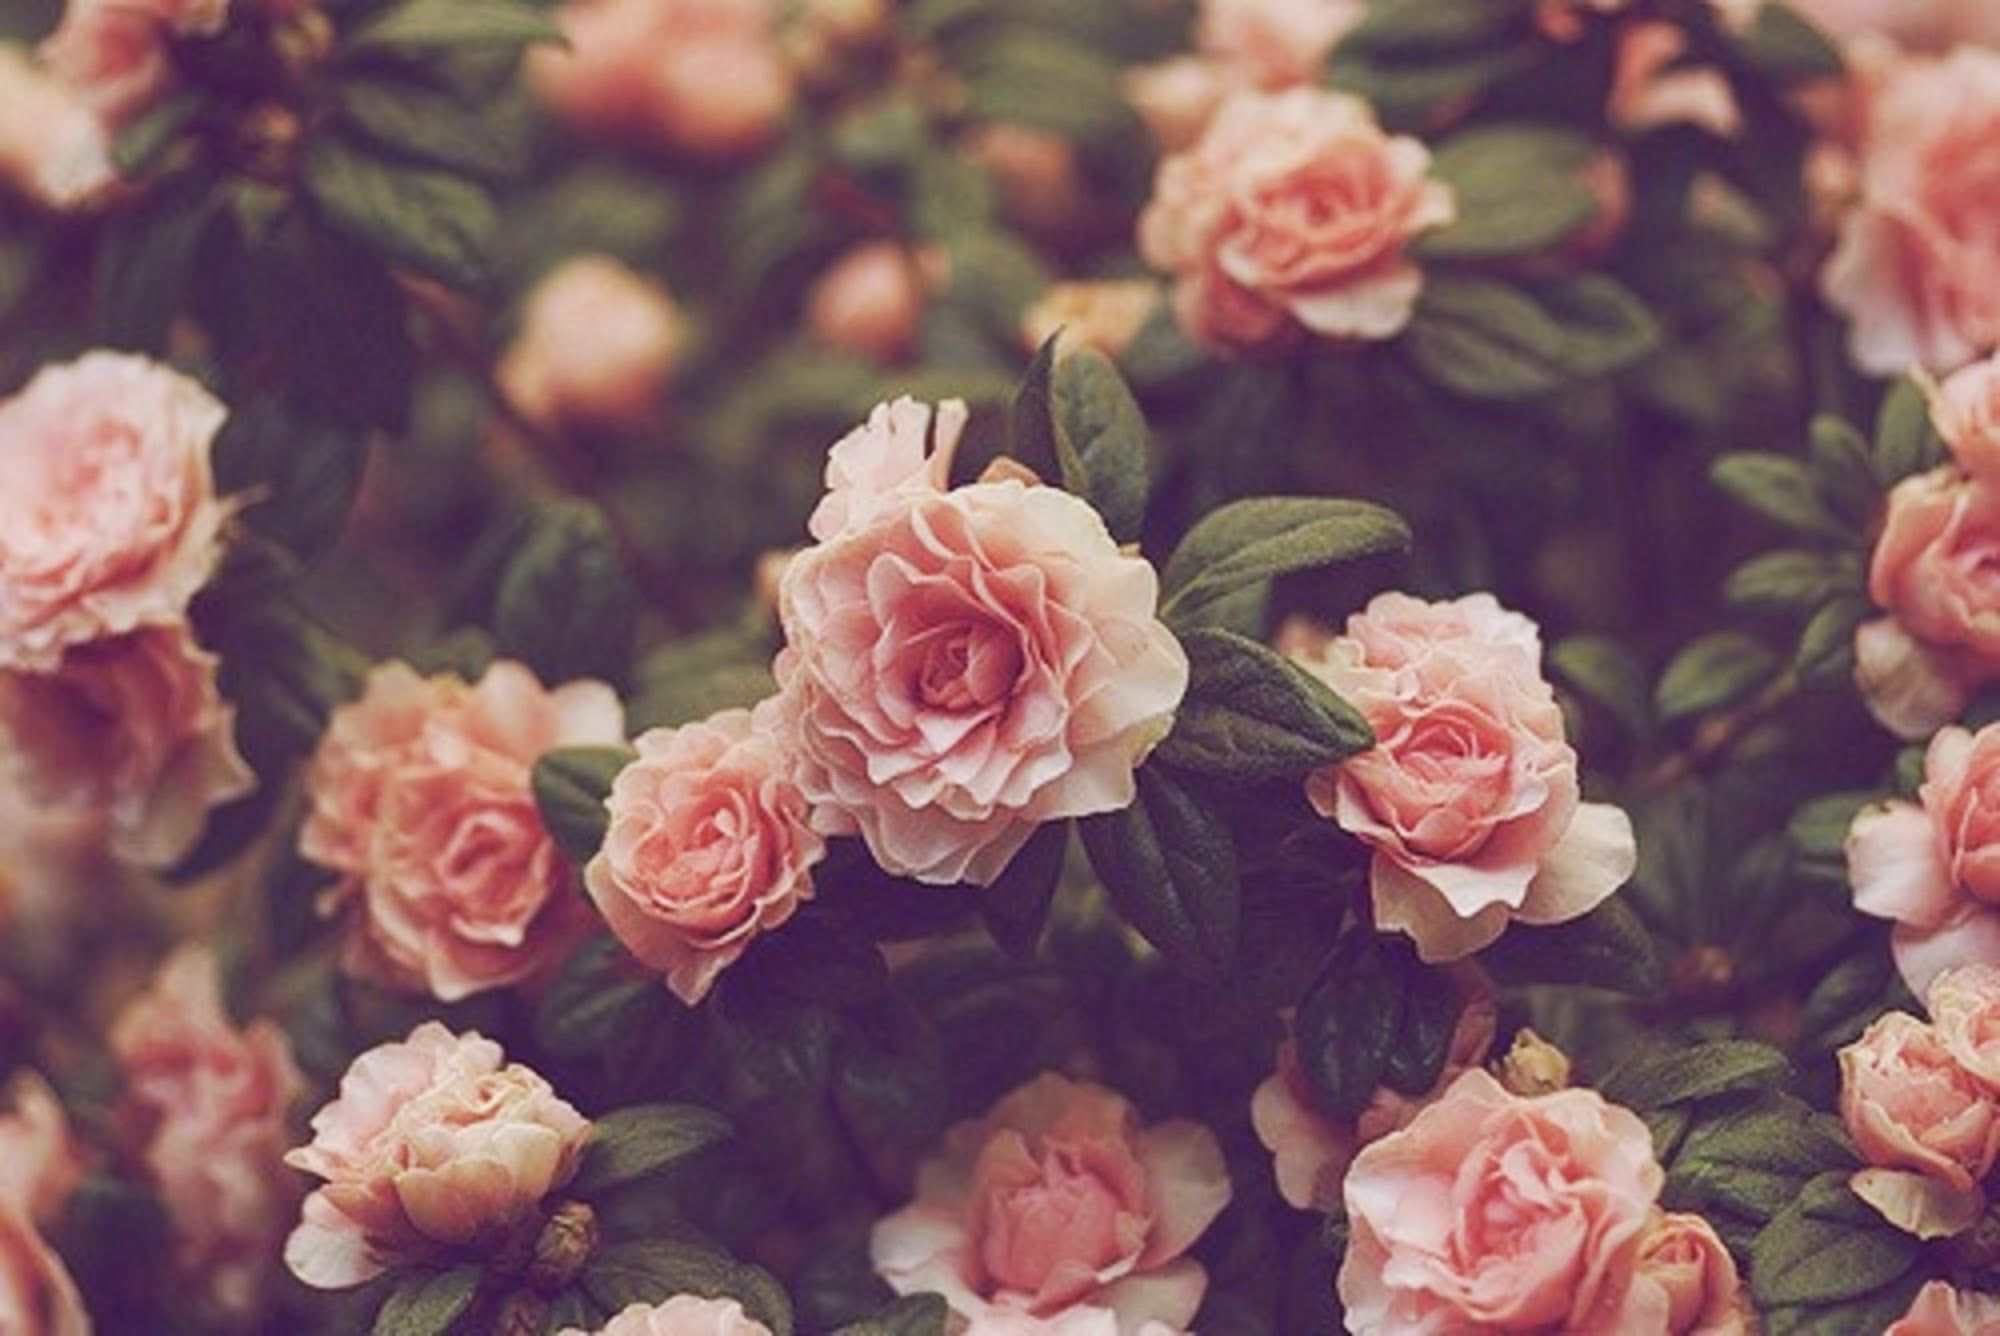 Flowers Tumblr Wallpaper For Iphone 008 2000x1336 Px 22327 Kb